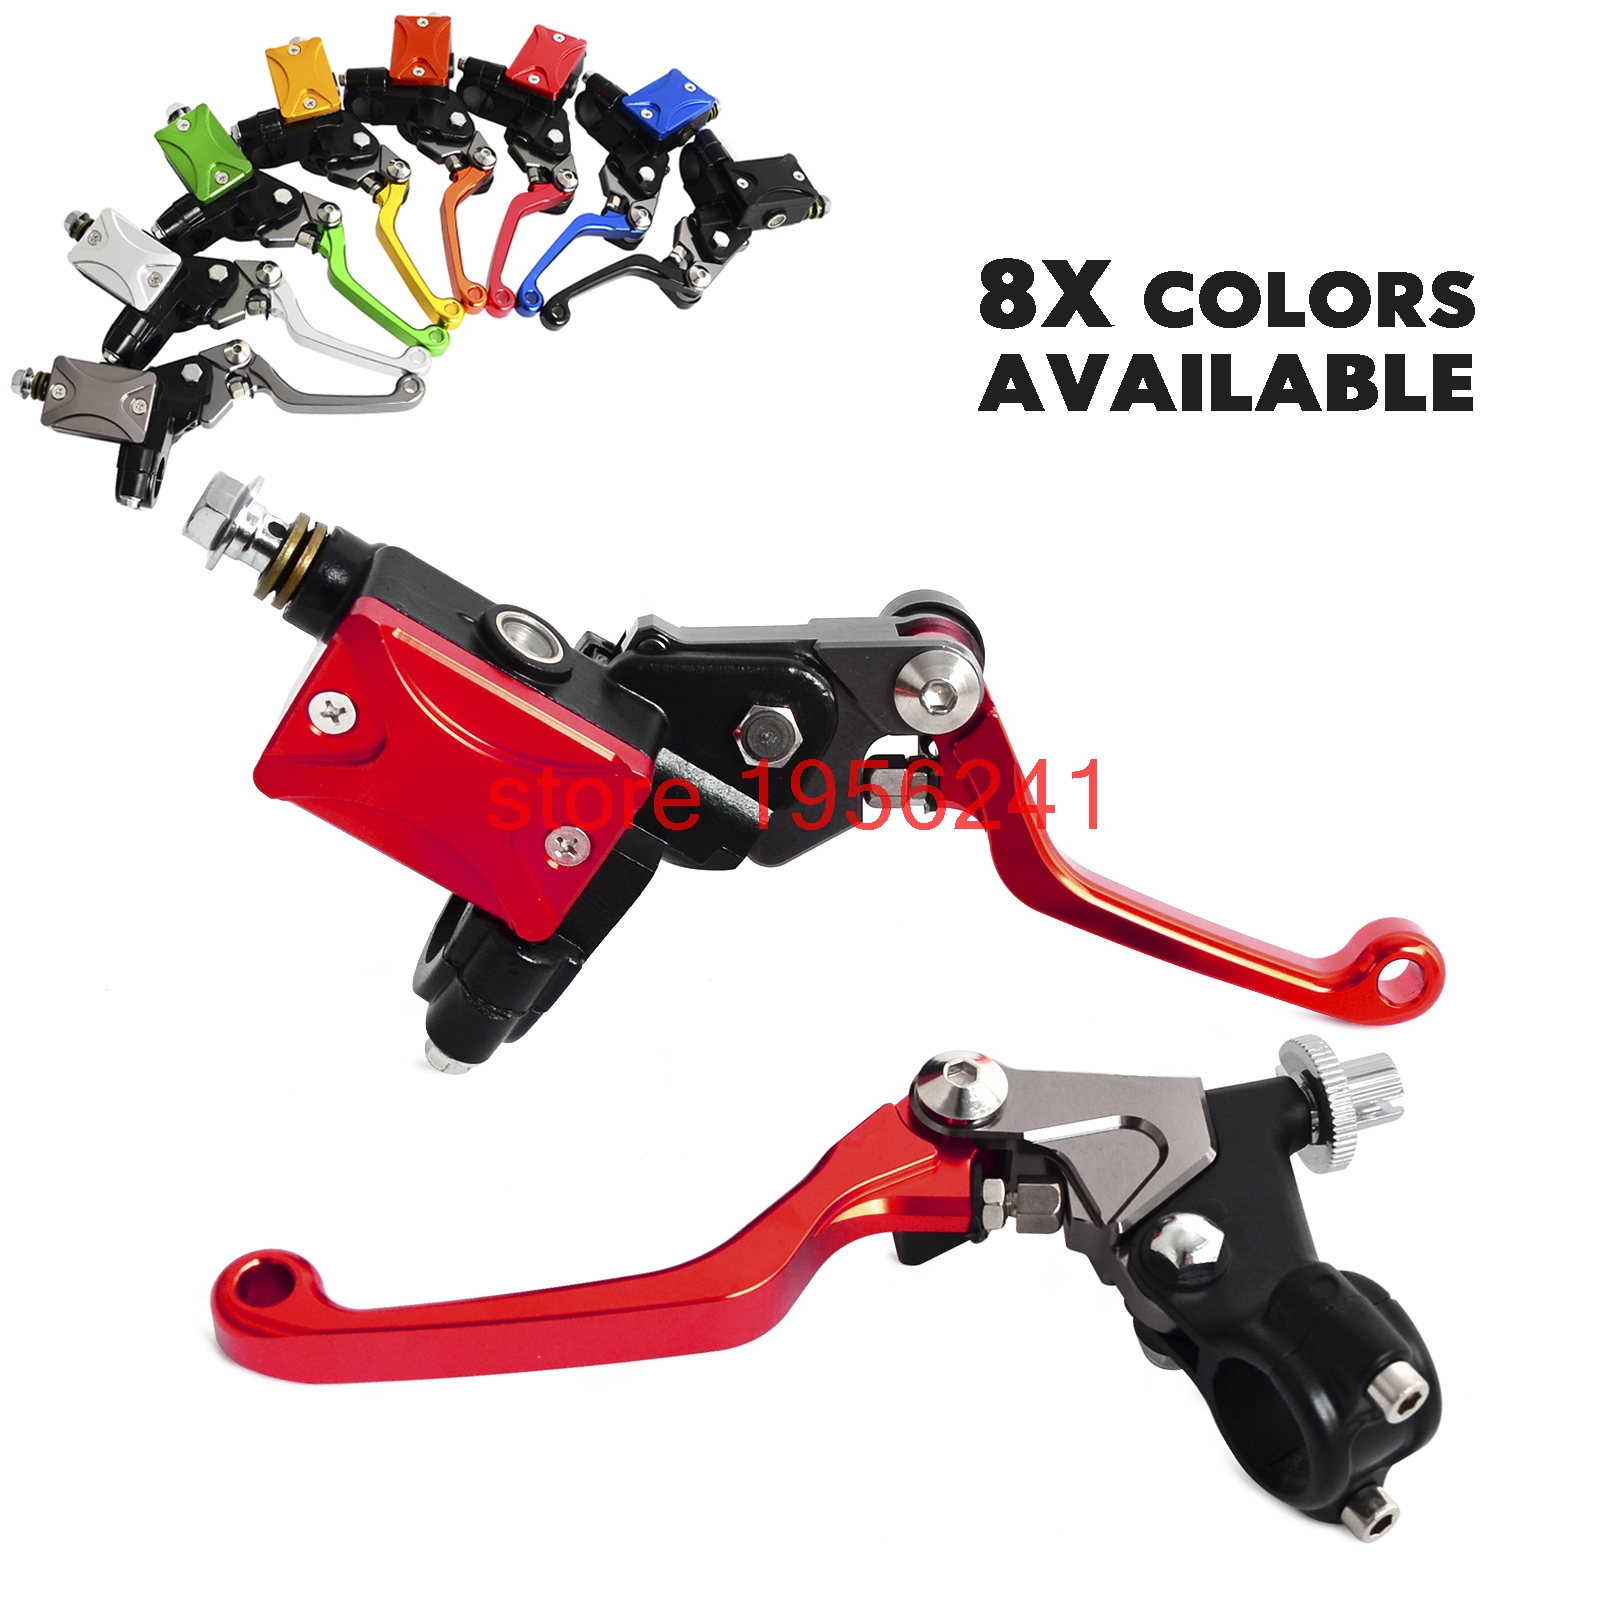 H2CNC Hydraulic Brake & Cable Clutch Lever Set Assembly For Kawasaki KX65 KX85 KX125 KX250 KX250F KX450F KLX250 KLX450R novus 4 26